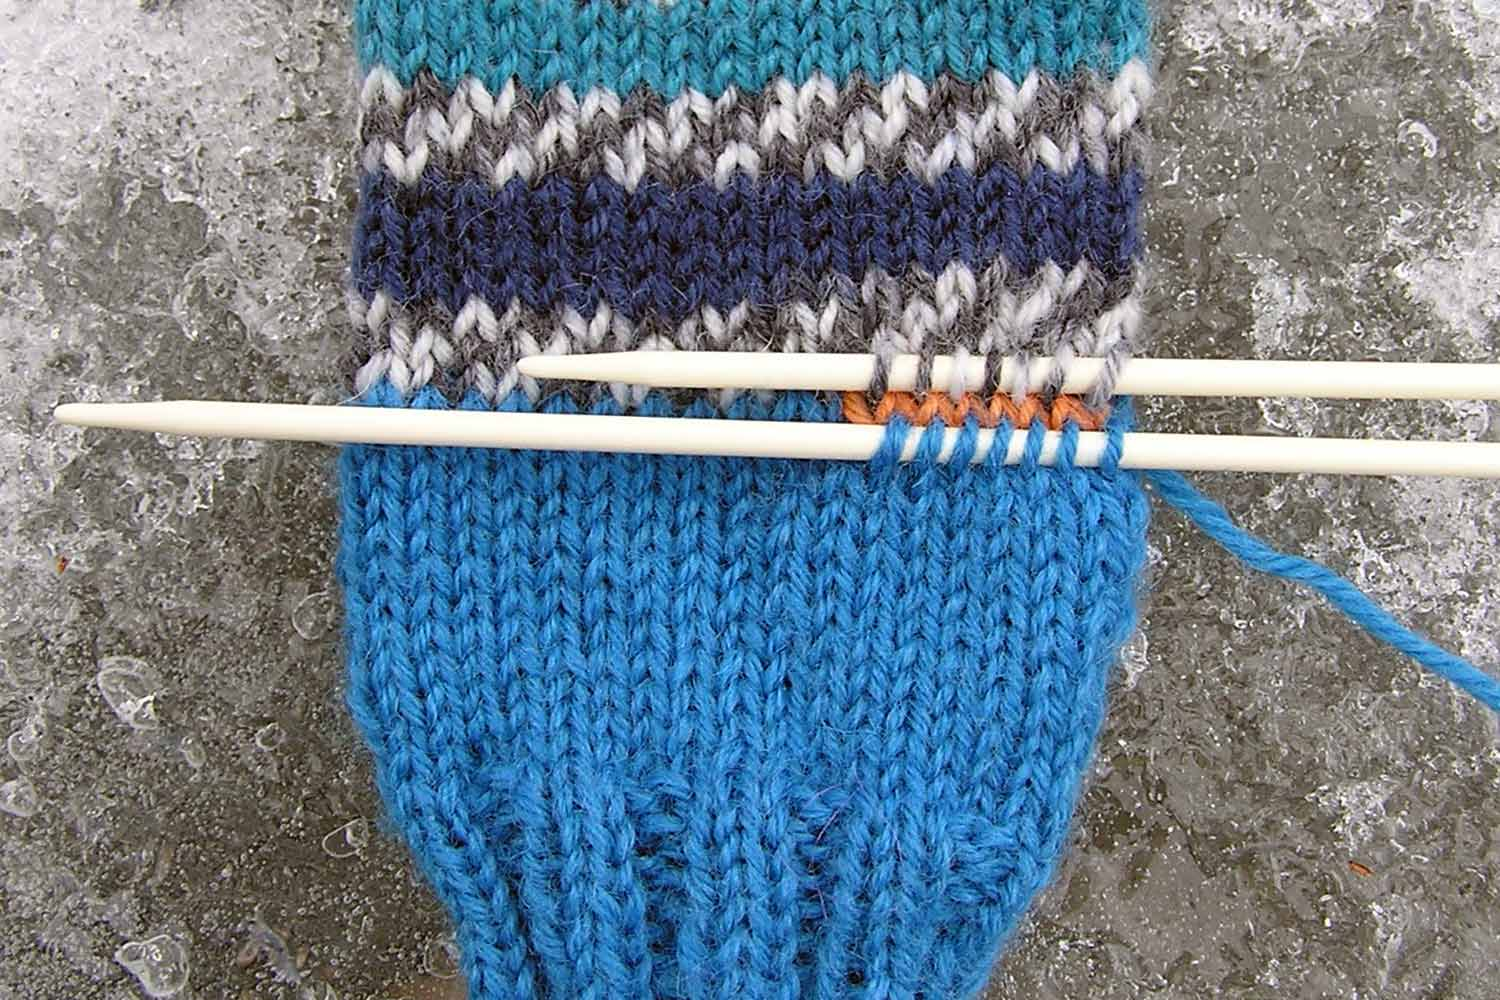 A small double pointed needle is inserted through seven stitches in the row immediately below the waste yarn stitches and another needle holds seven stitches in row immediately above waste yarn stitches.